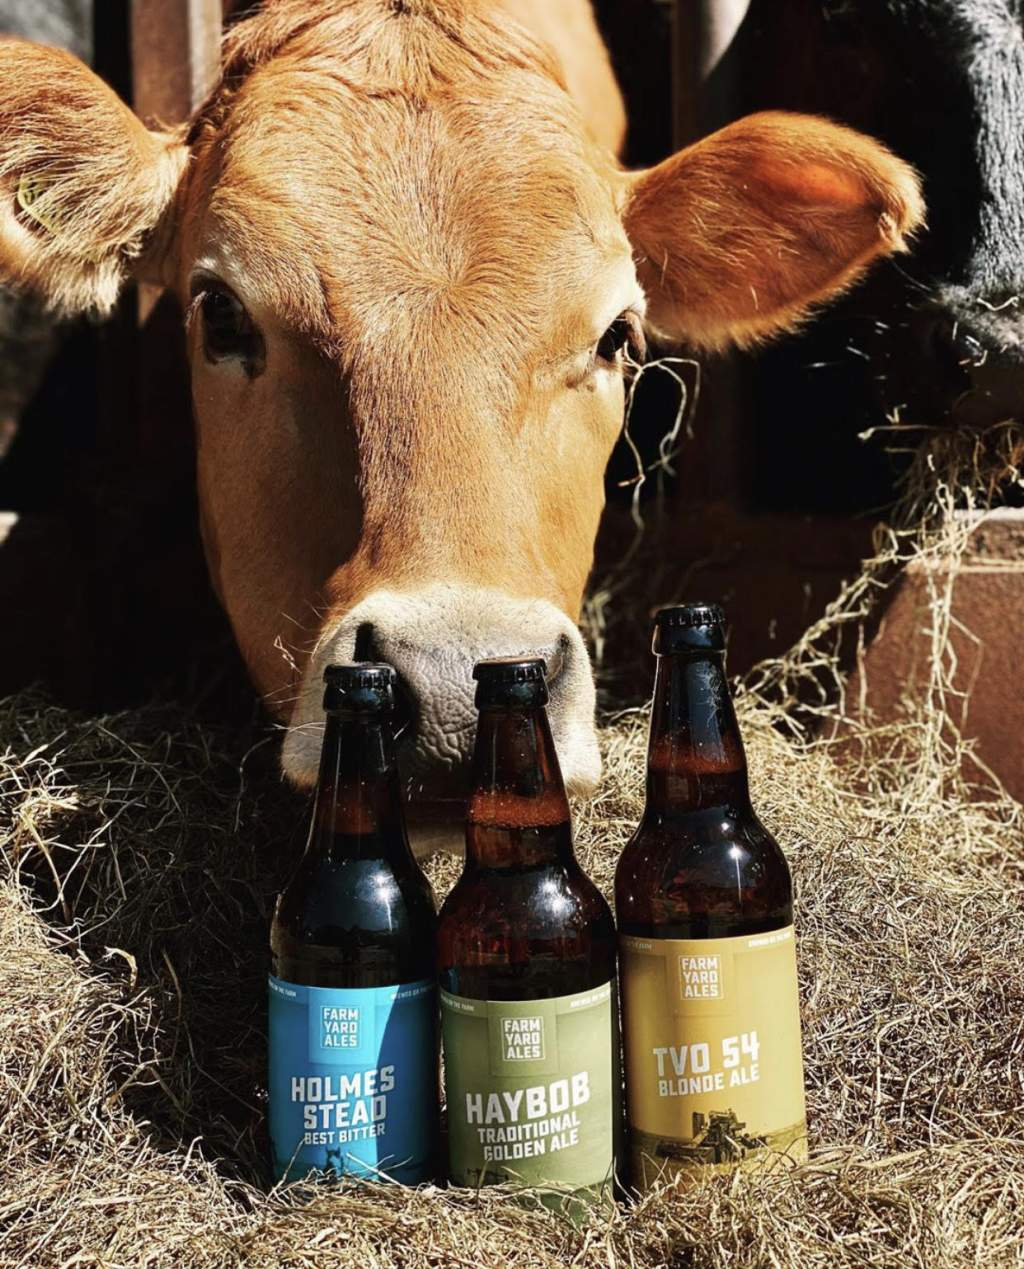 8-9pm, 1-2am: Farm Yard Ales ONE YEAR'S supply of beer!